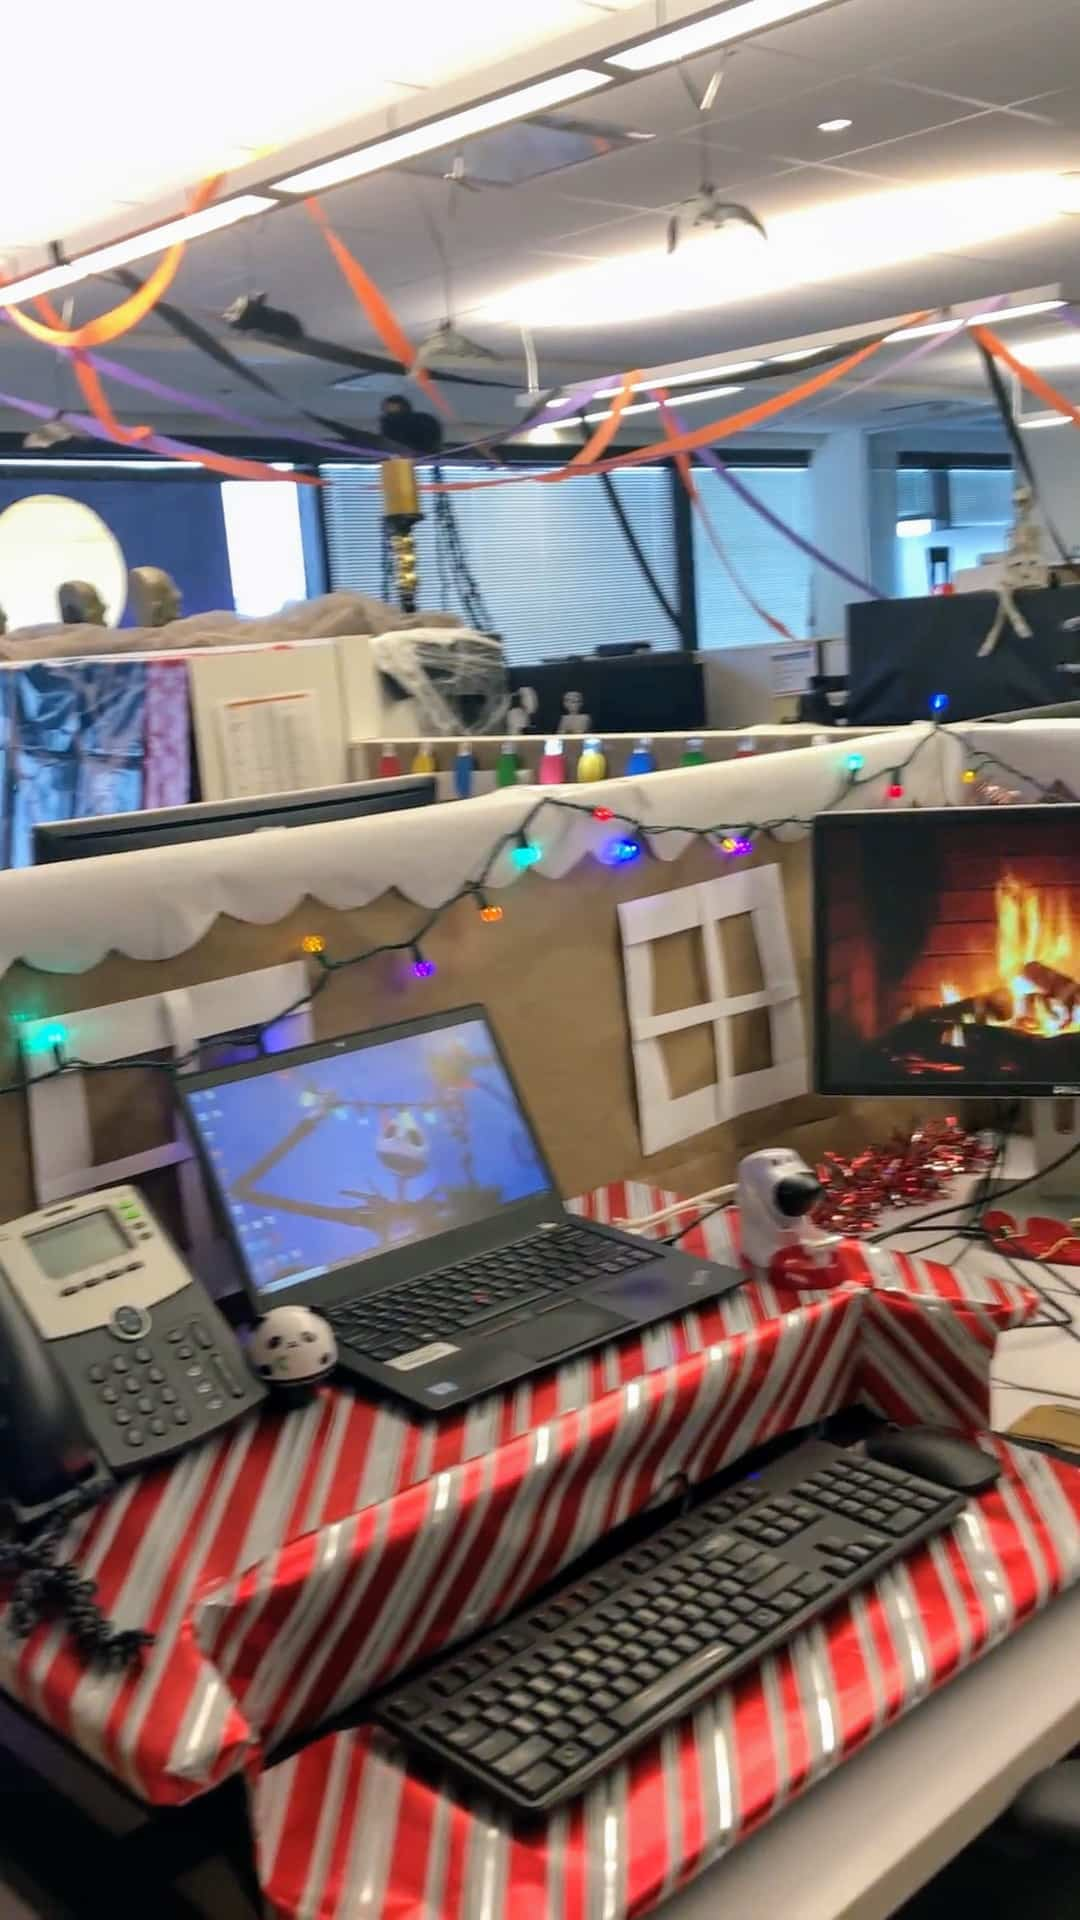 A cubicle decorated as Christmas Town from the Nightmare Before Christmas